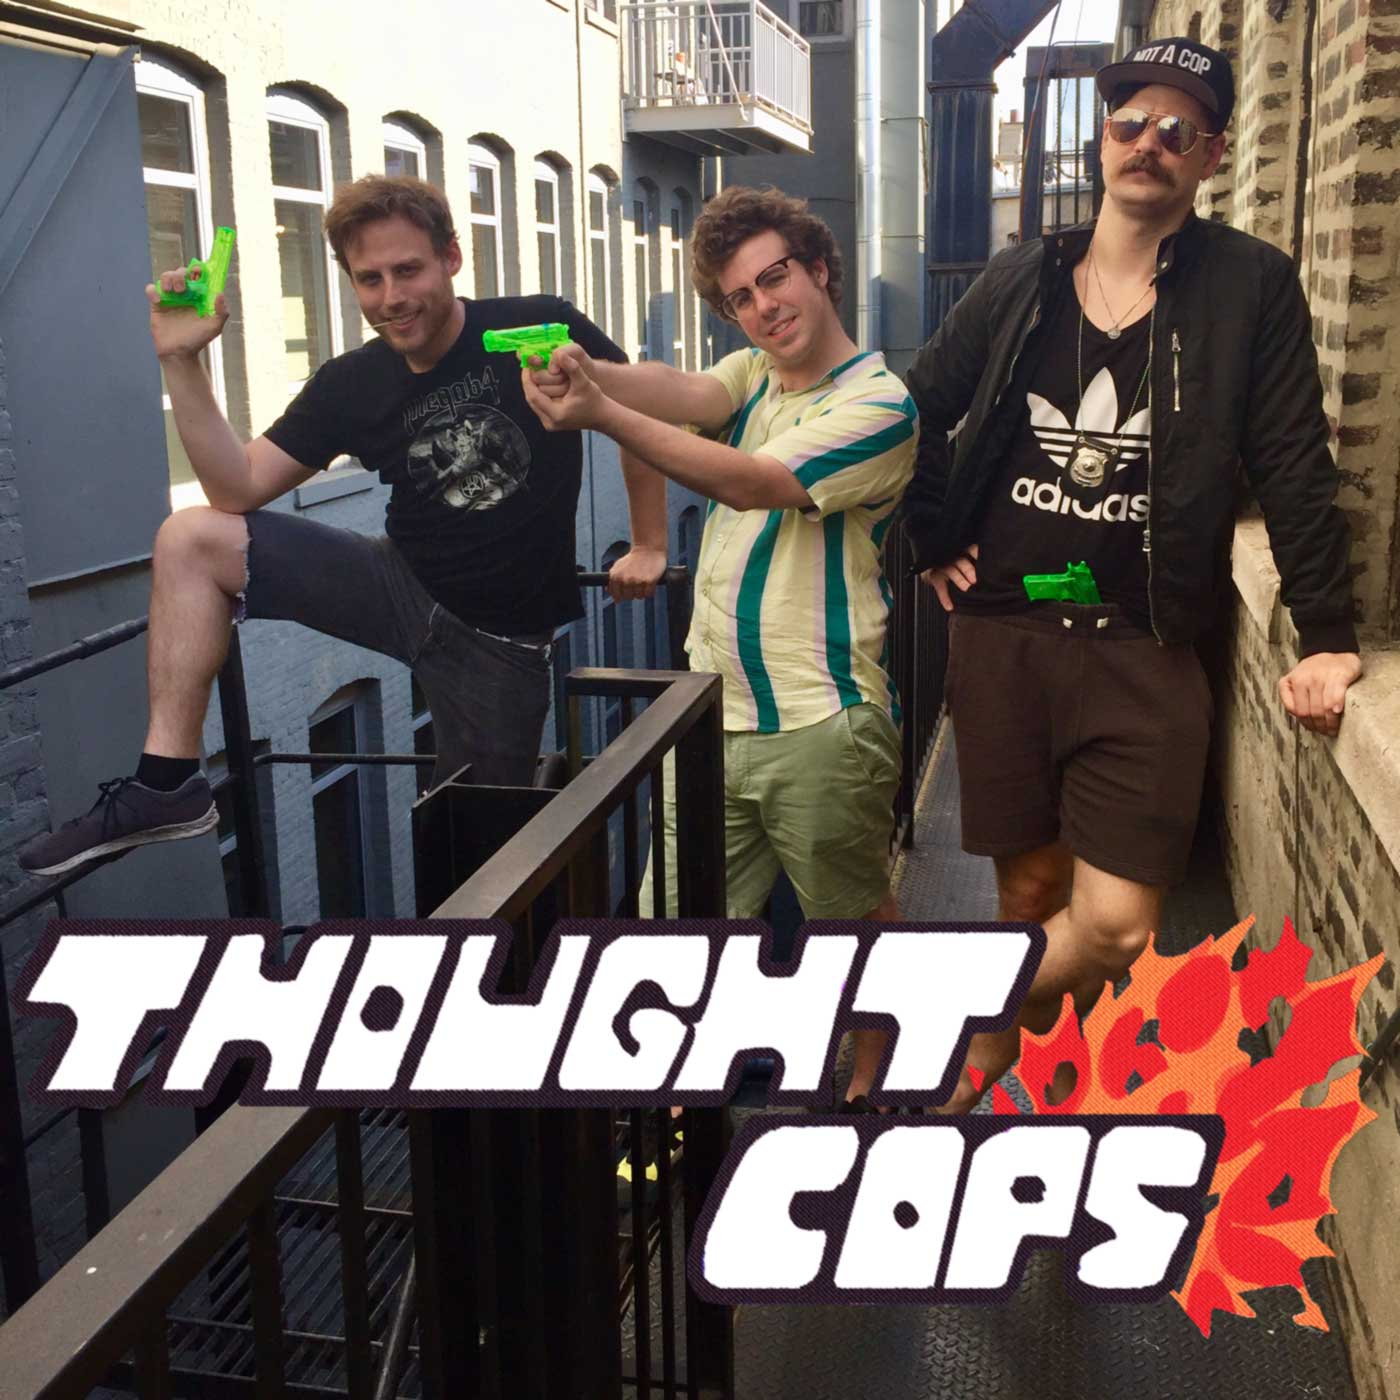 127-thought-cops-nicky-martin-chicago-underground-comedy